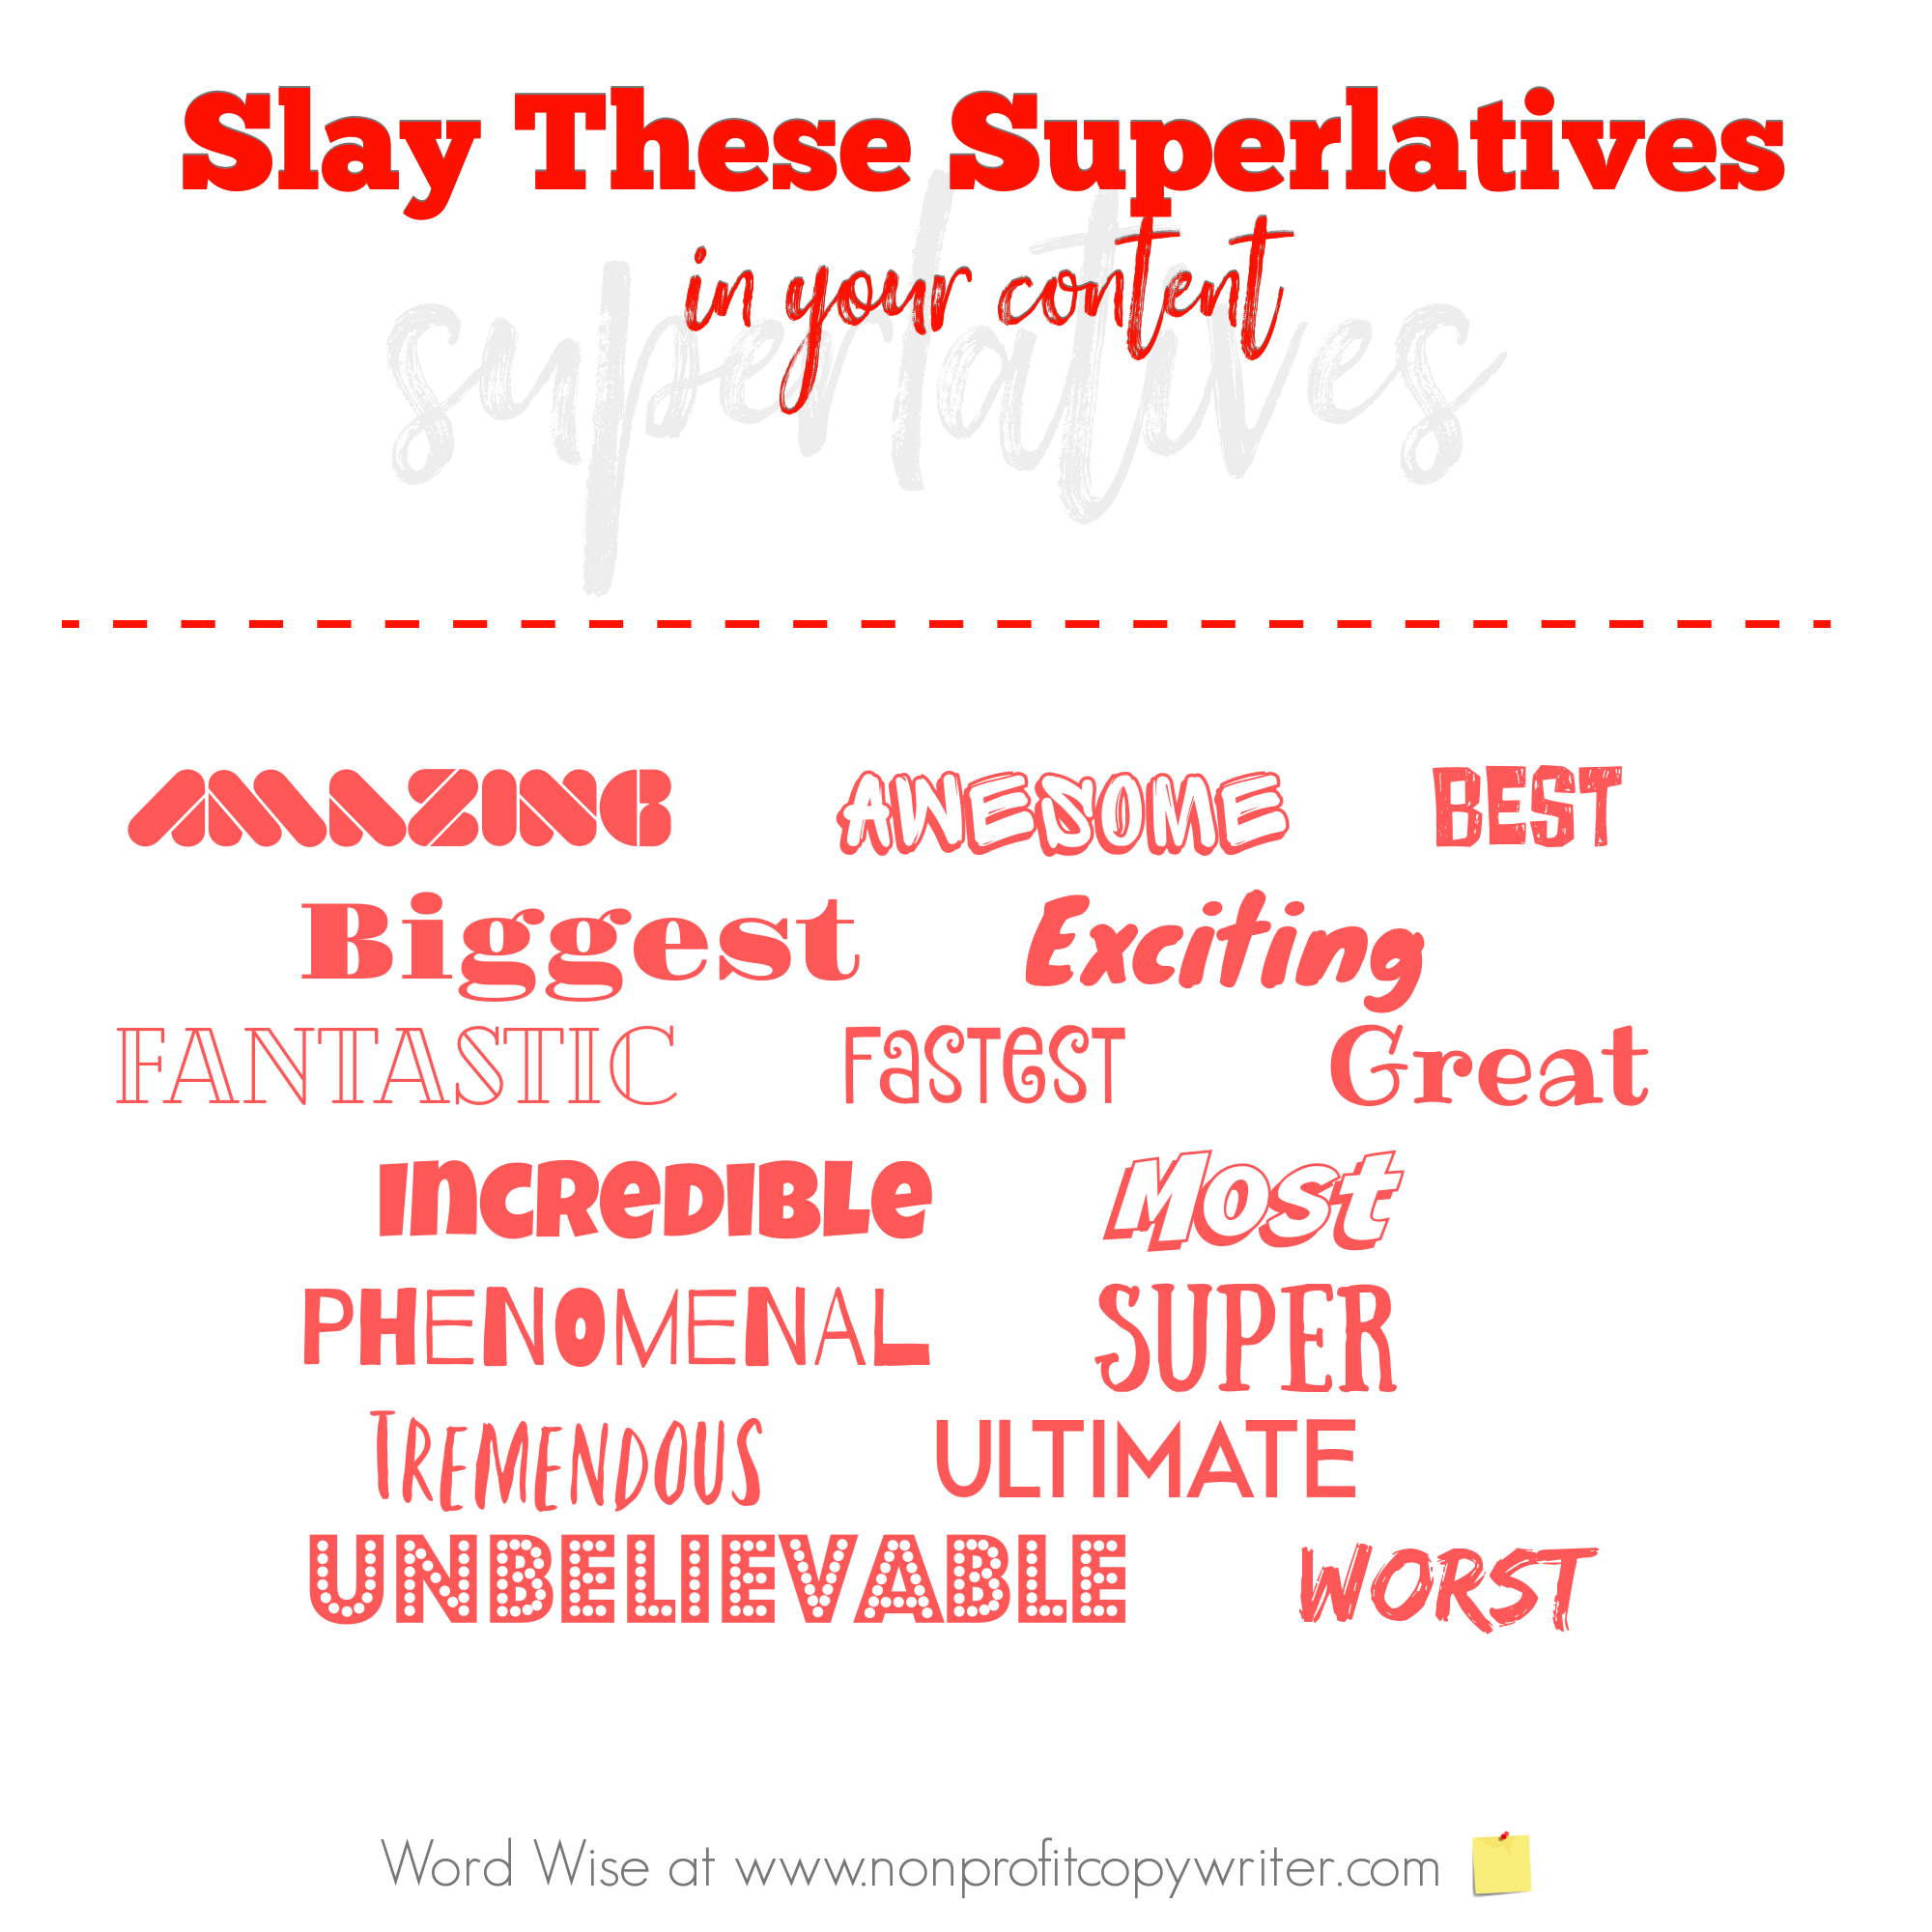 Slay superlatives for more engaging #content with Word Wise at Nonprofit Copywriter #WritingTips